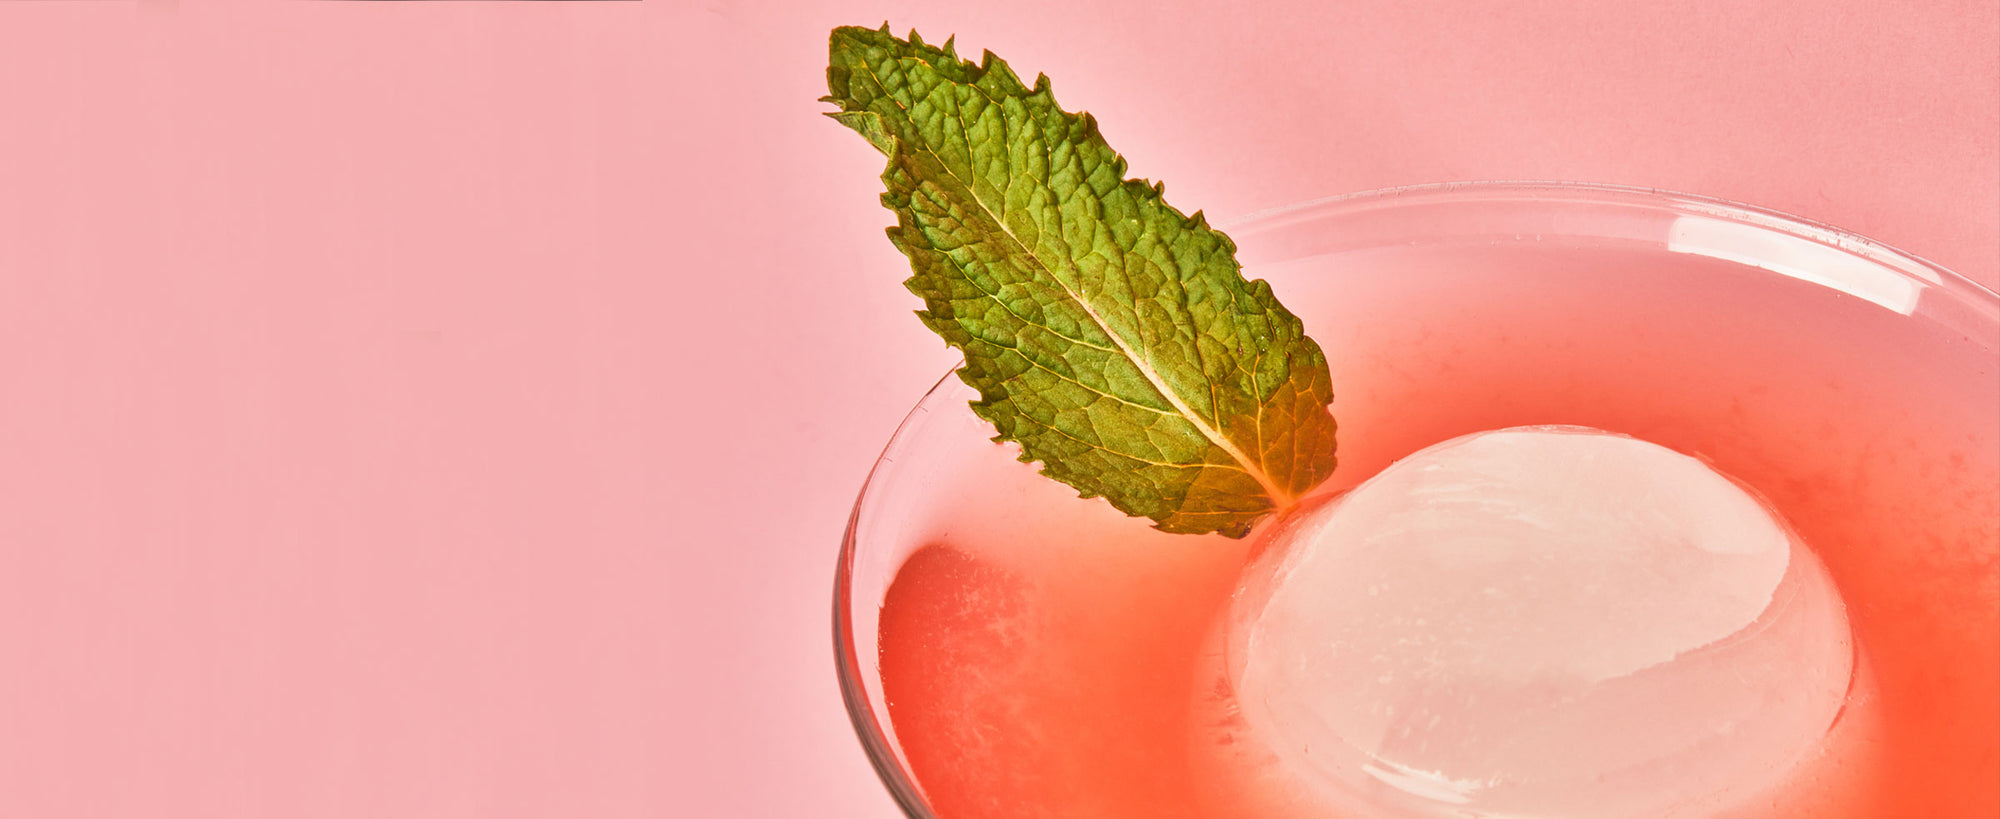 A close-up image of the Strawberry Margarita featuring a mint garnish.